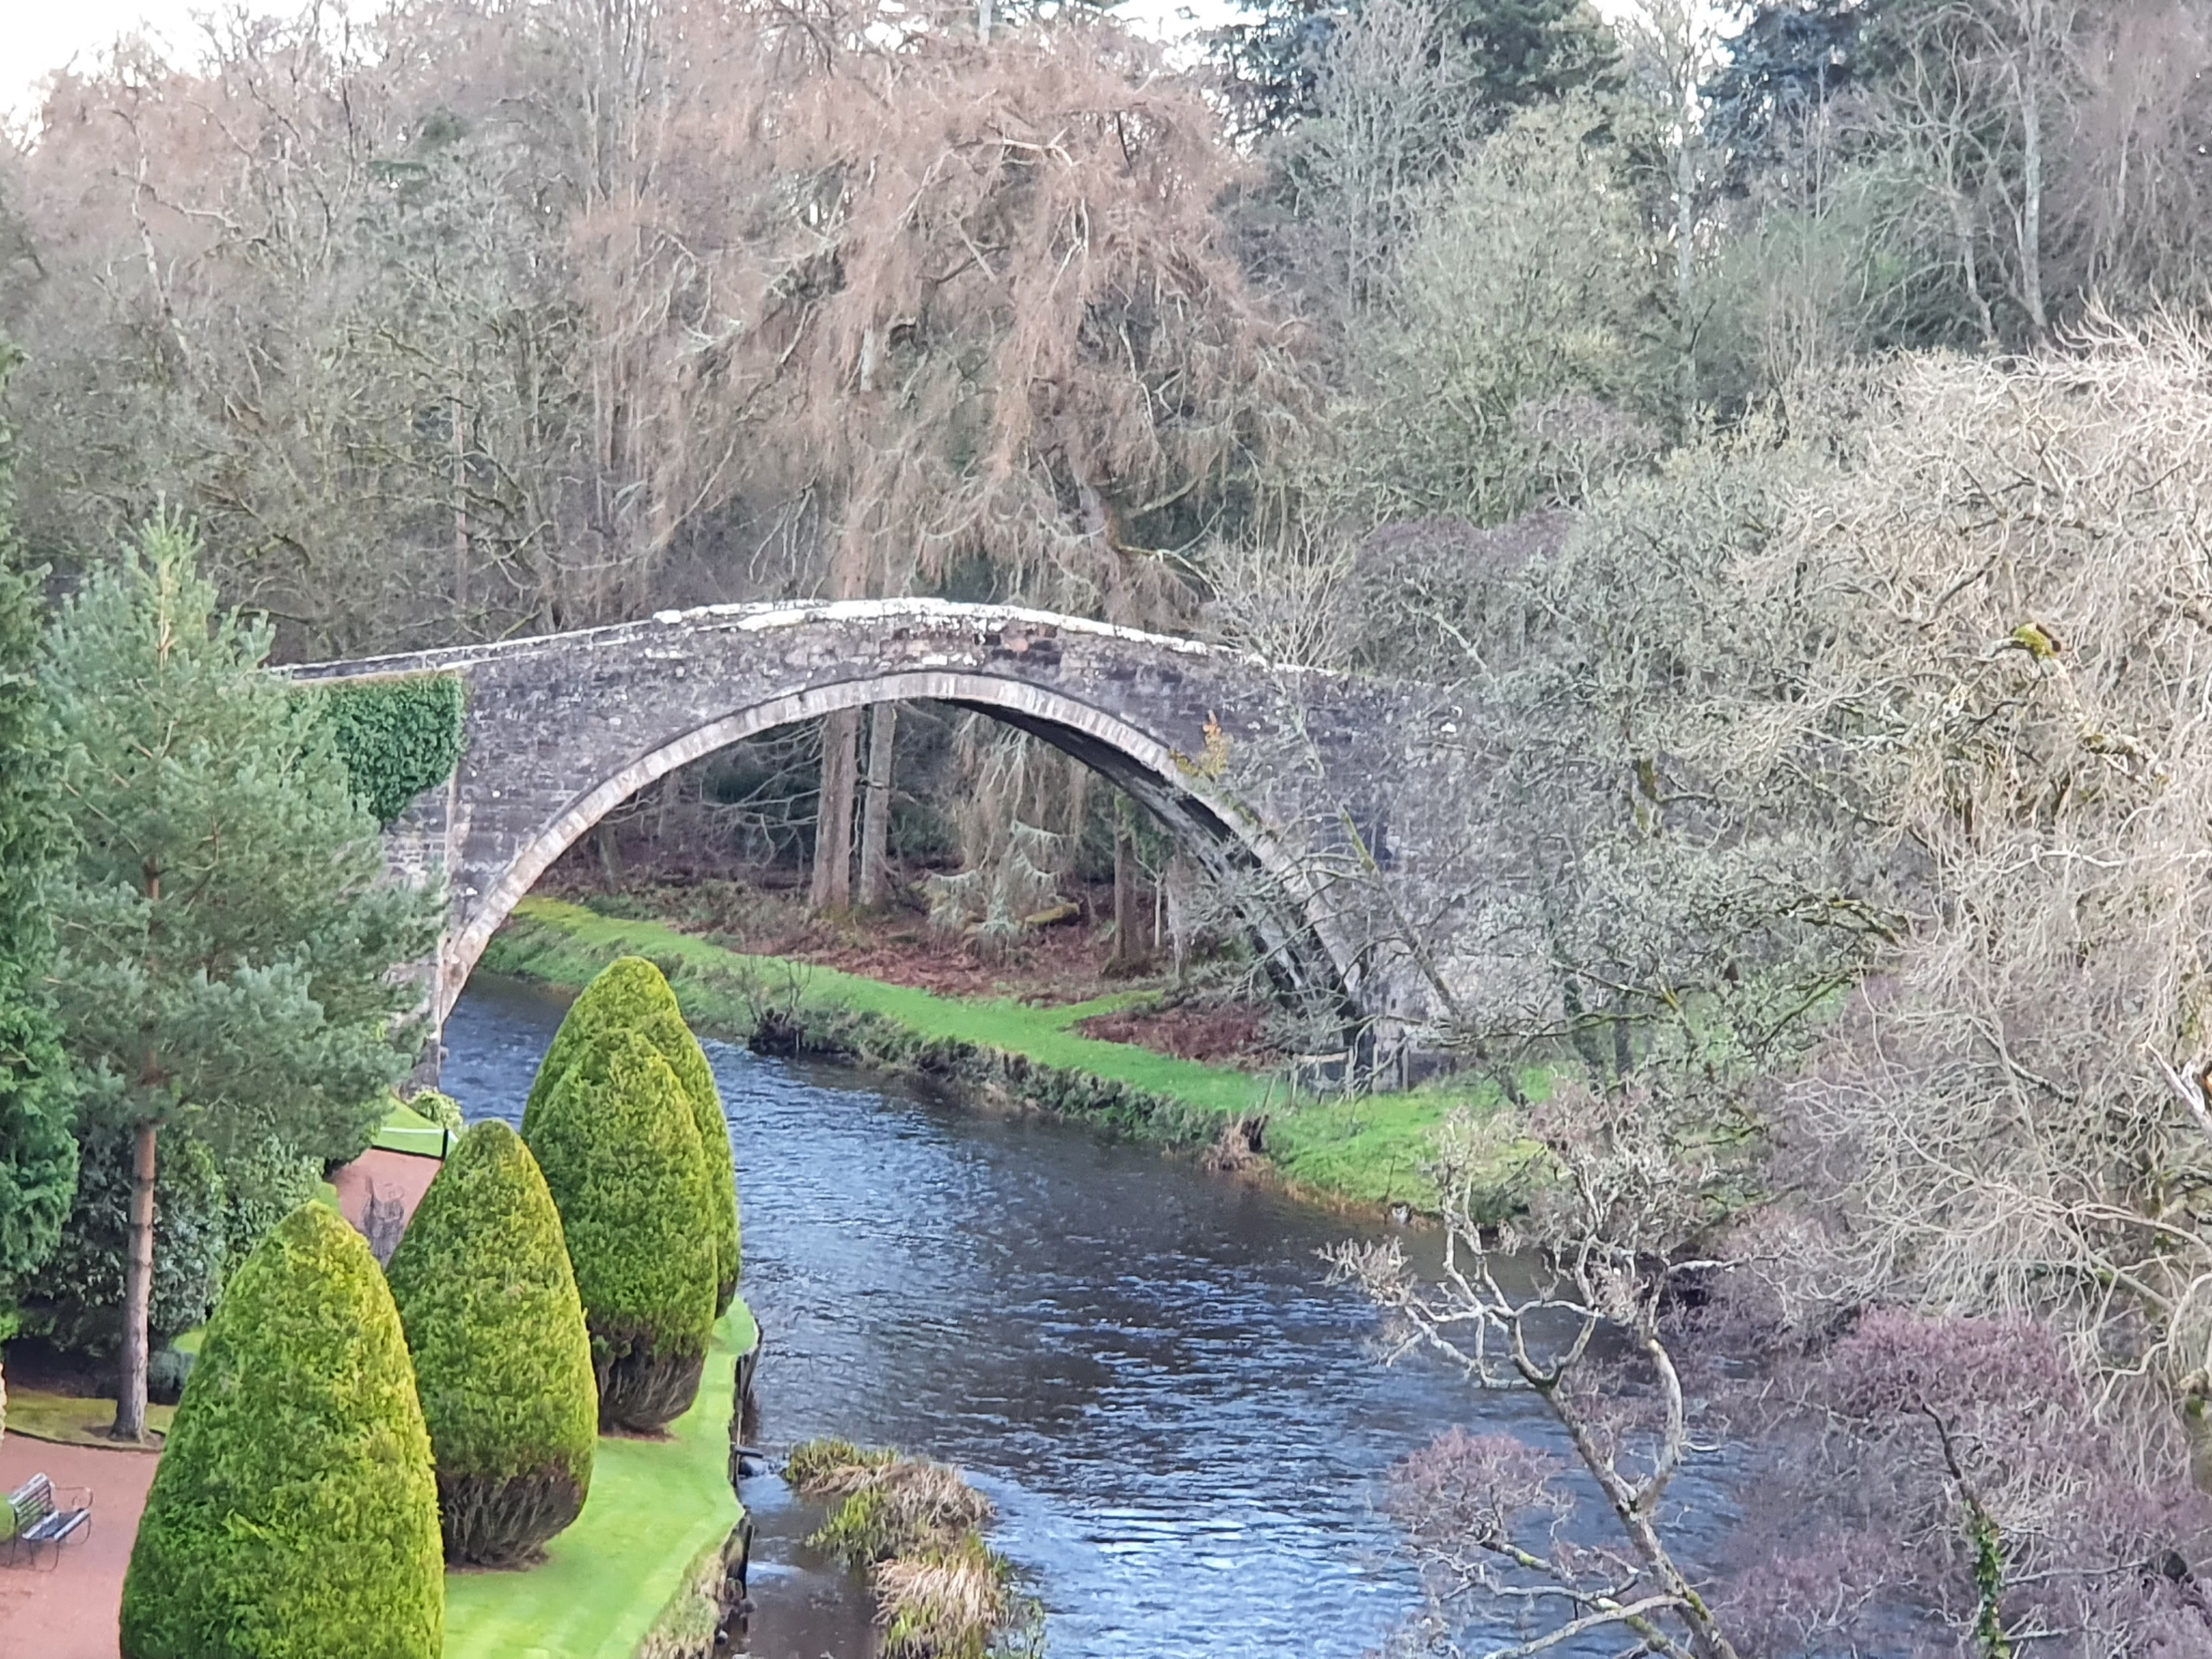 The bridge over the River Doon 'Brig O Doon' can be seen spanning the river in the middle distance.